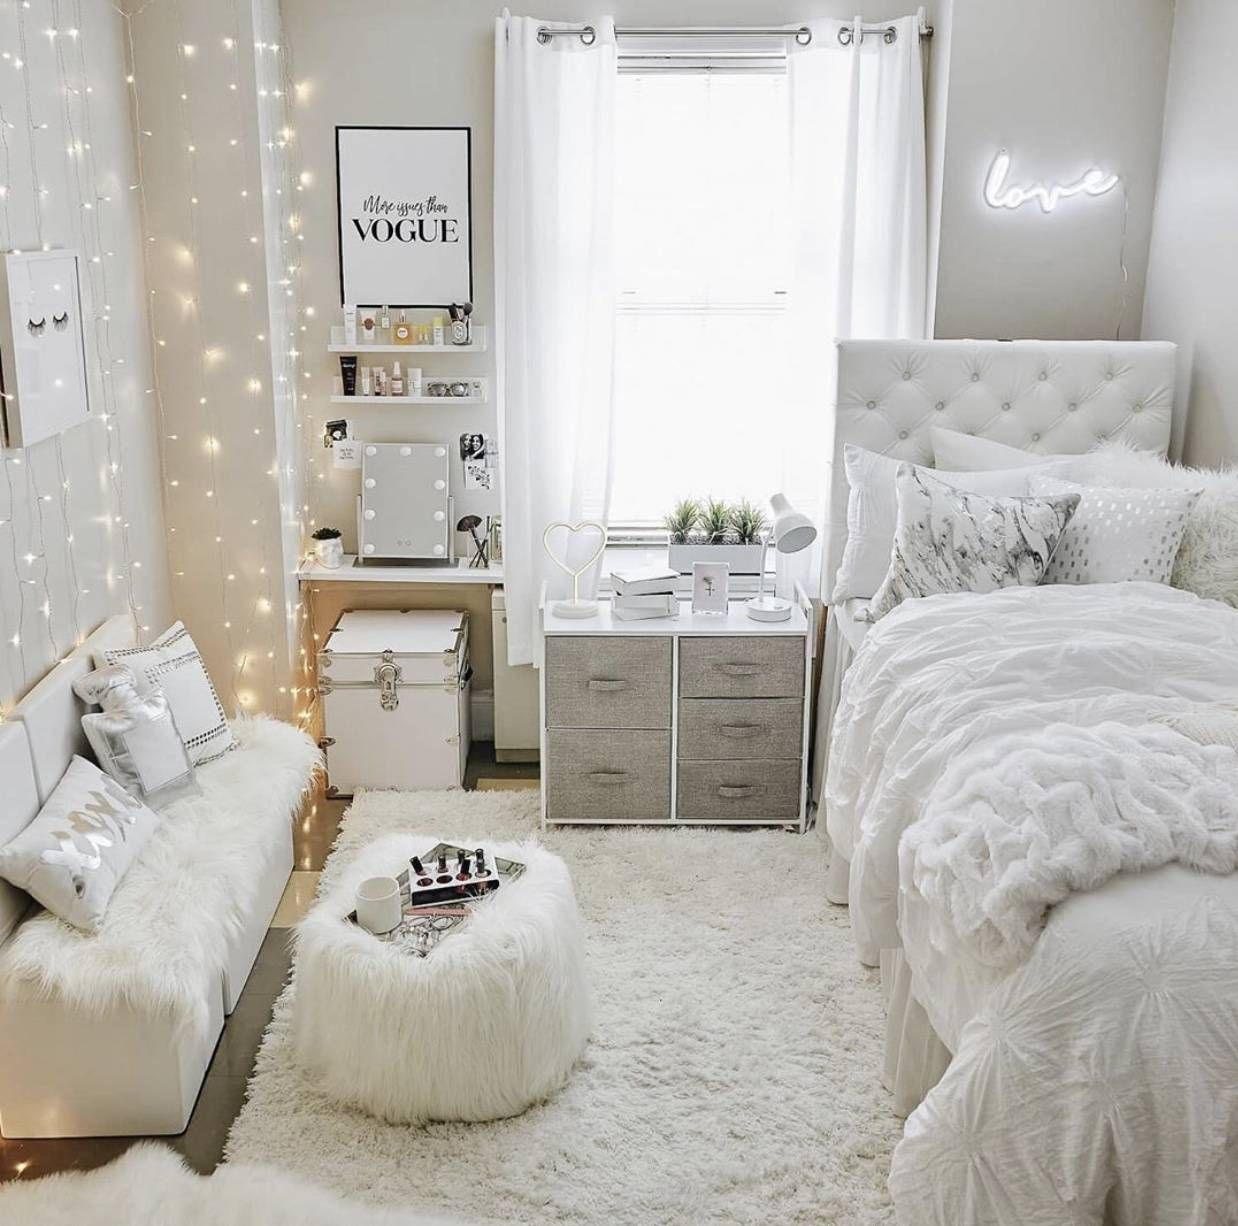 Vsco Room Ideas How To Create A Cute Vsco Room College Room